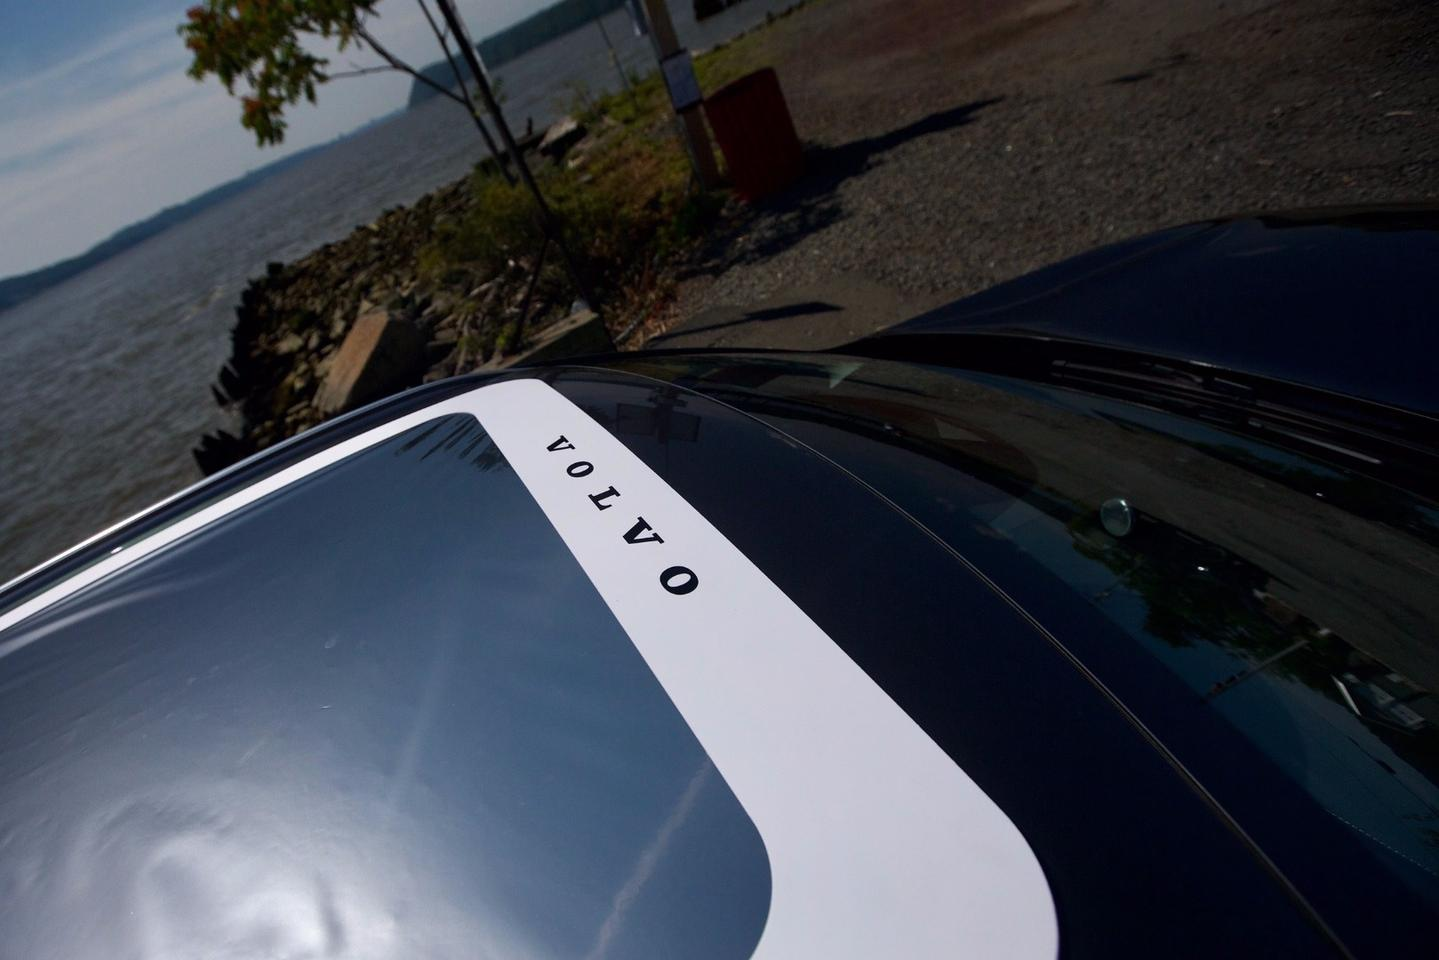 Volvo has prepared the XC60 for the impending eclipse